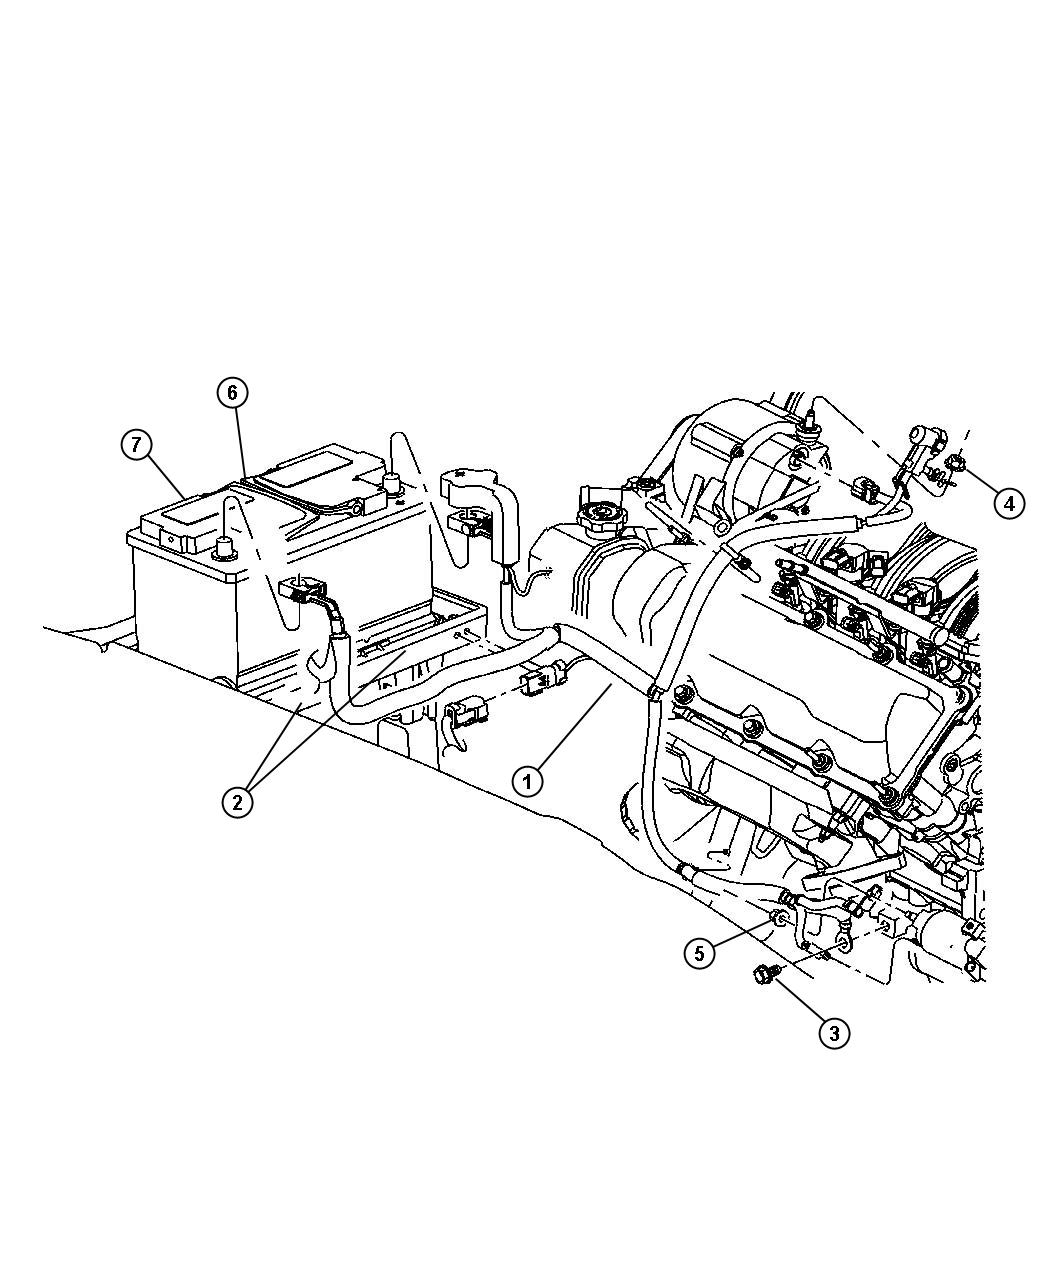 Jeep Grand Cherokee Wiring Used For Alternator And